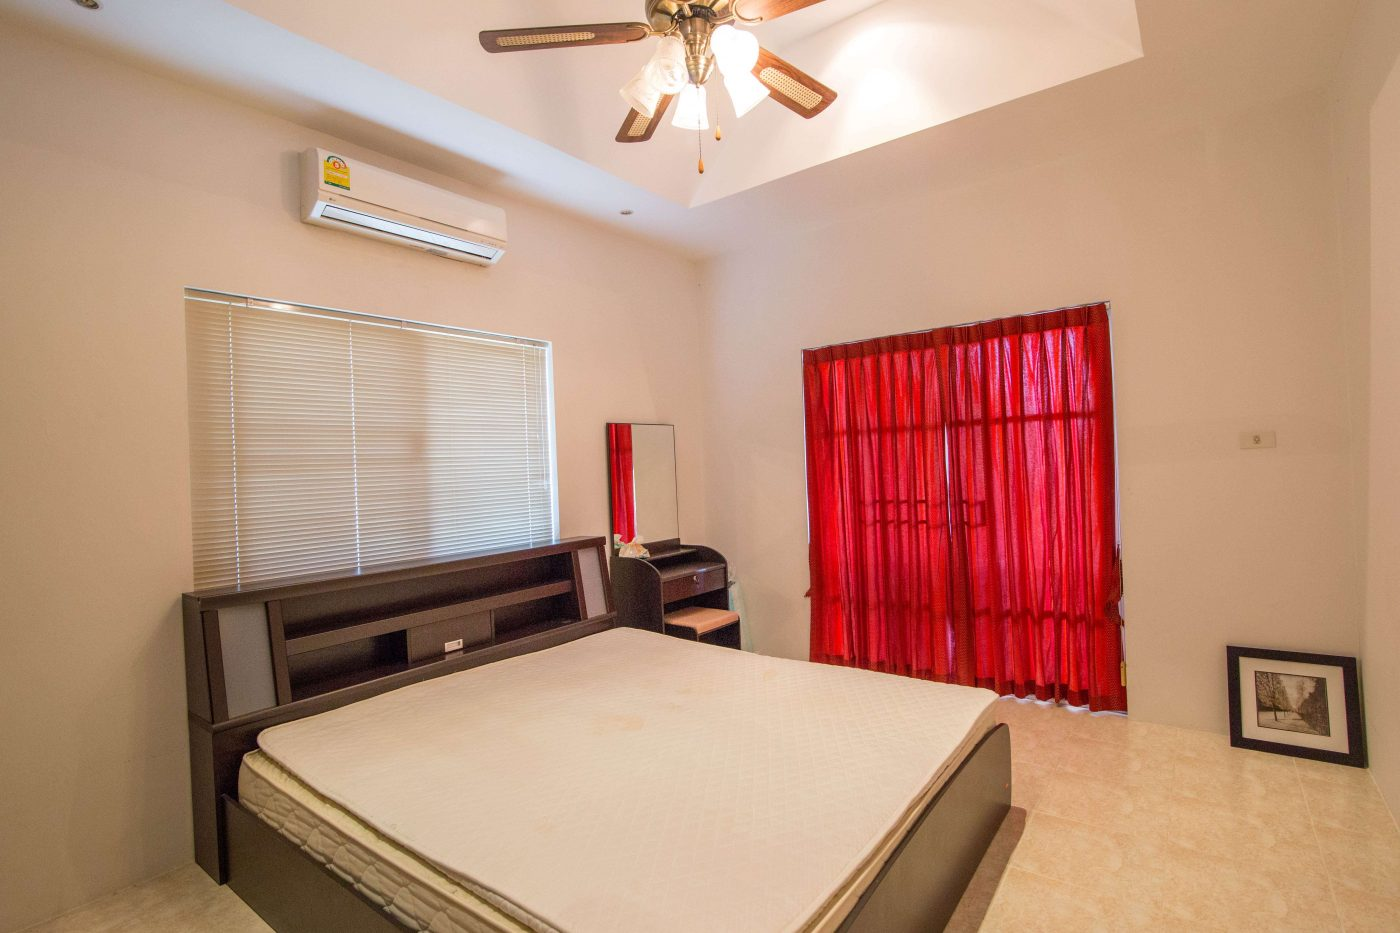 2 bedroom villa smart house village for rent